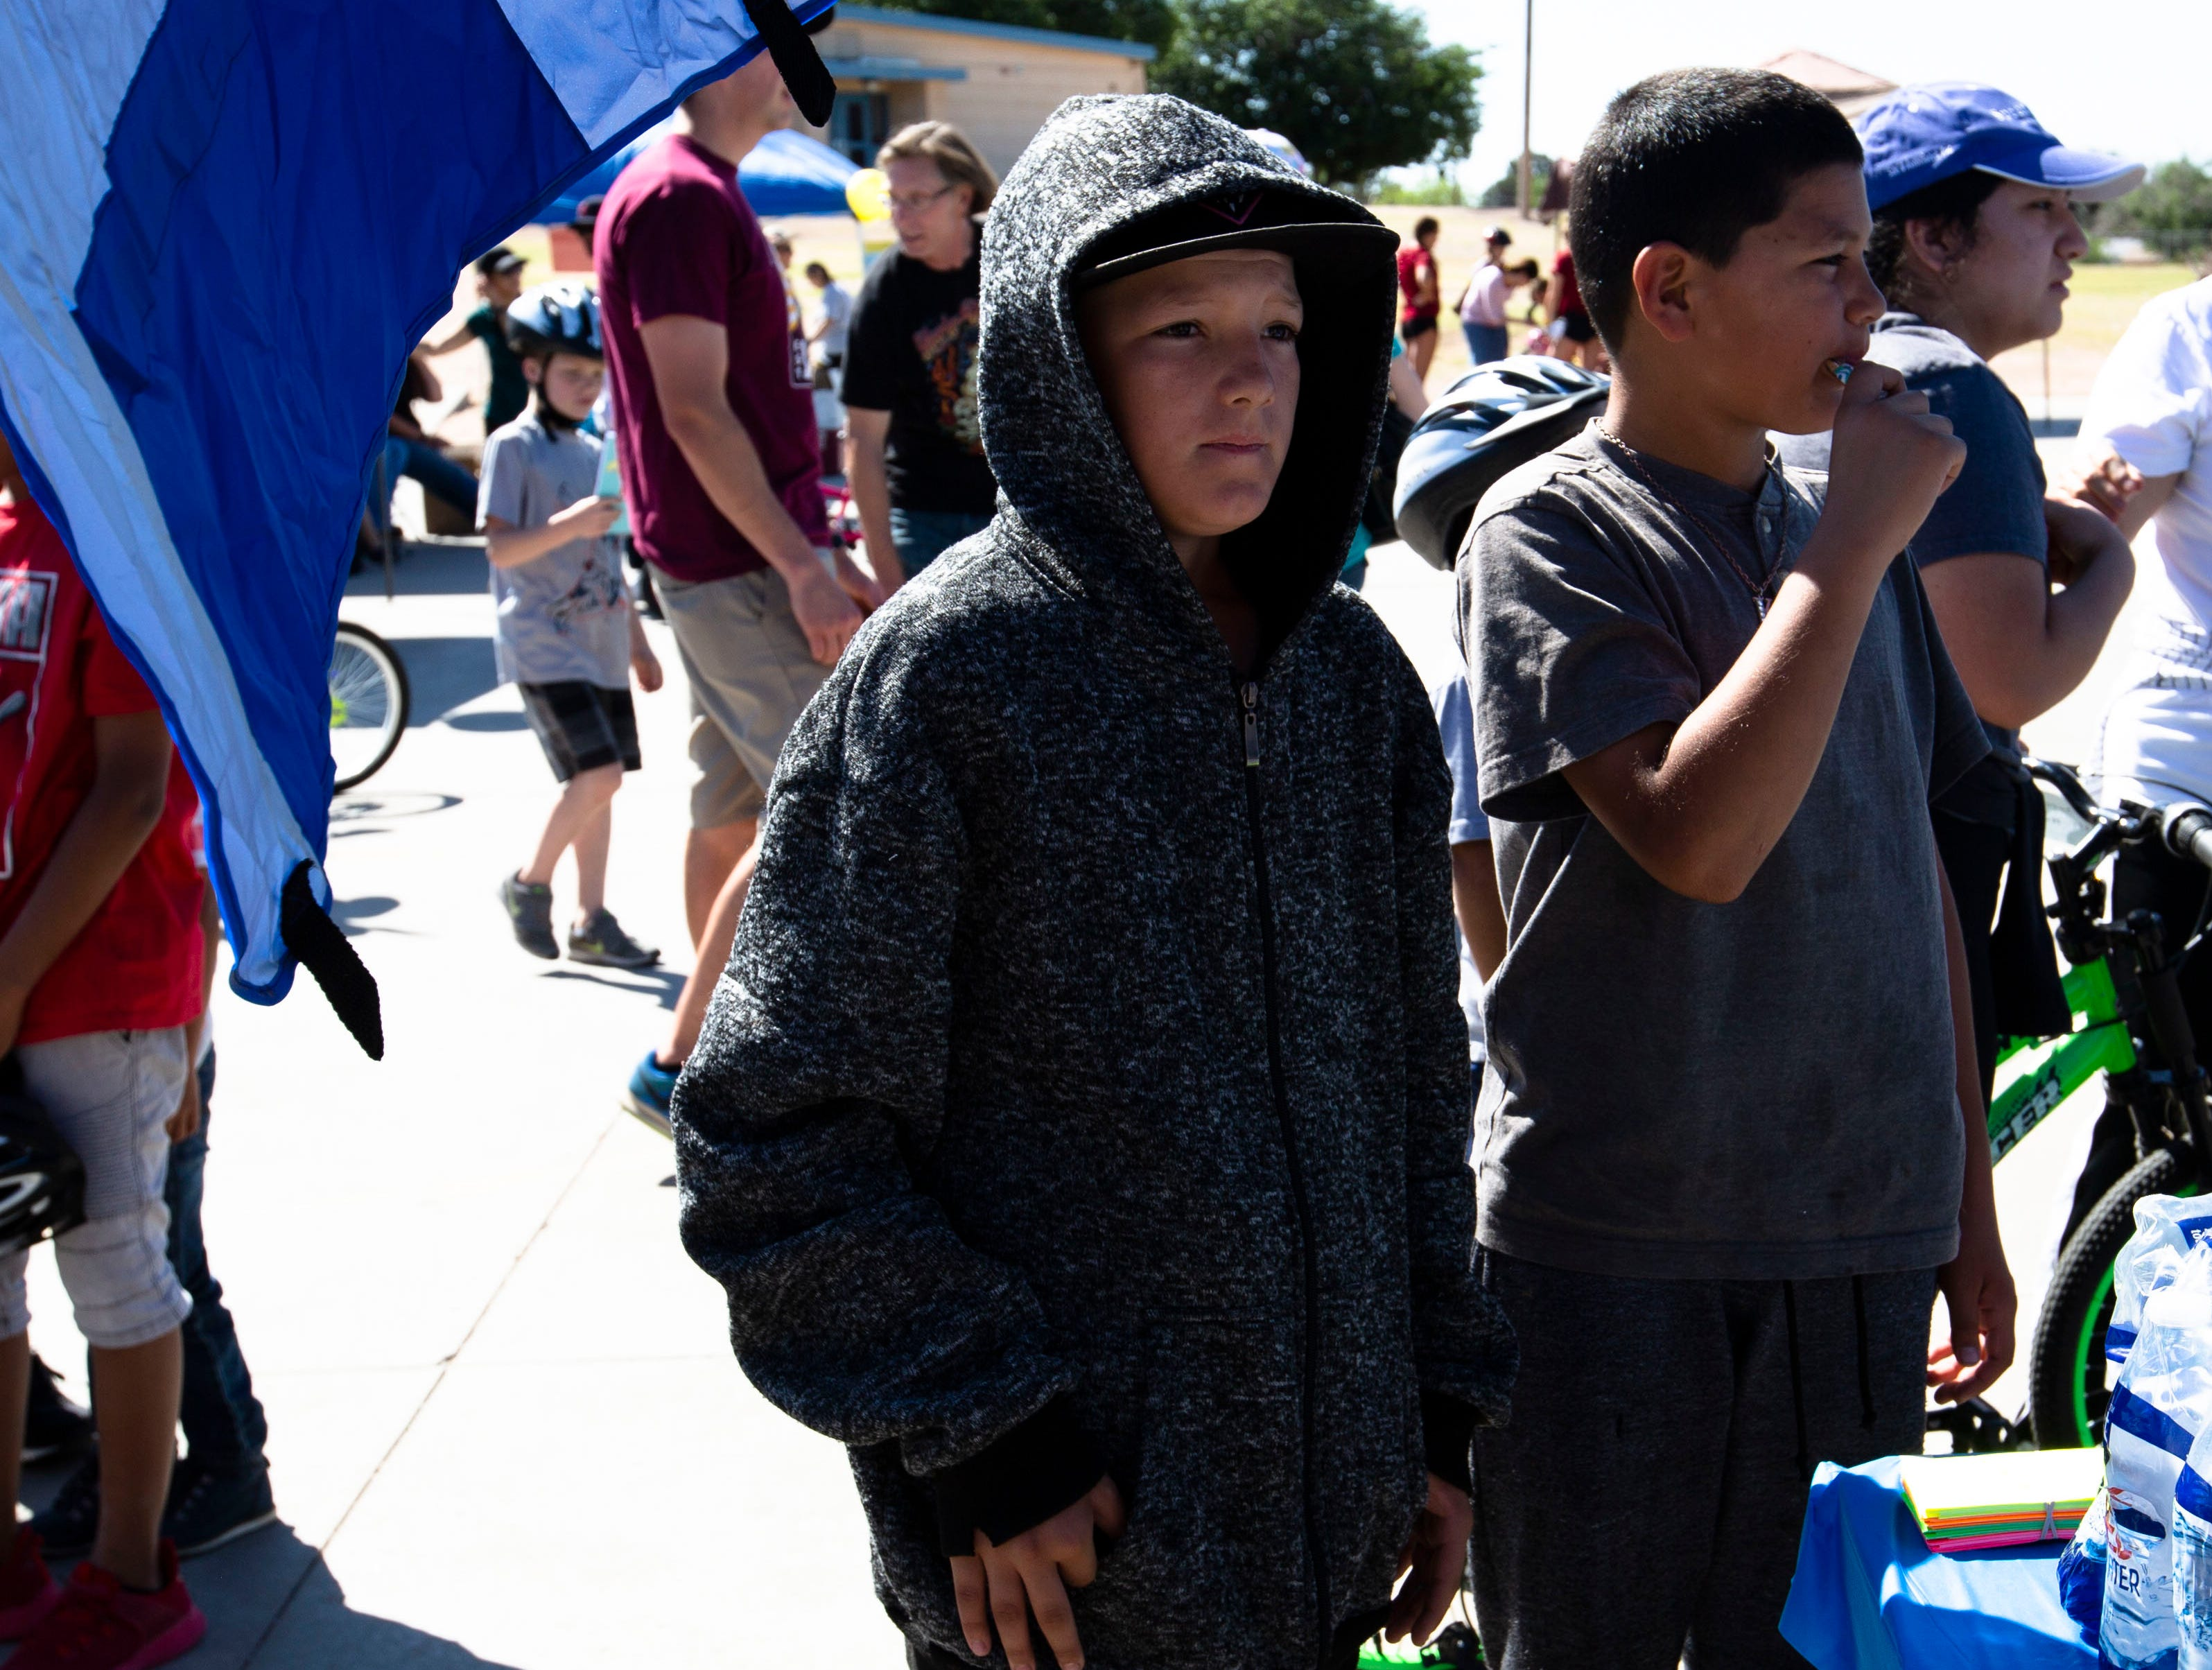 Alfonso Dominguez, 12, and Angelo Dominguez, 11, wait for their bikes to be repaired at the Family Bike Fiesta on Saturday, April 27, 2019